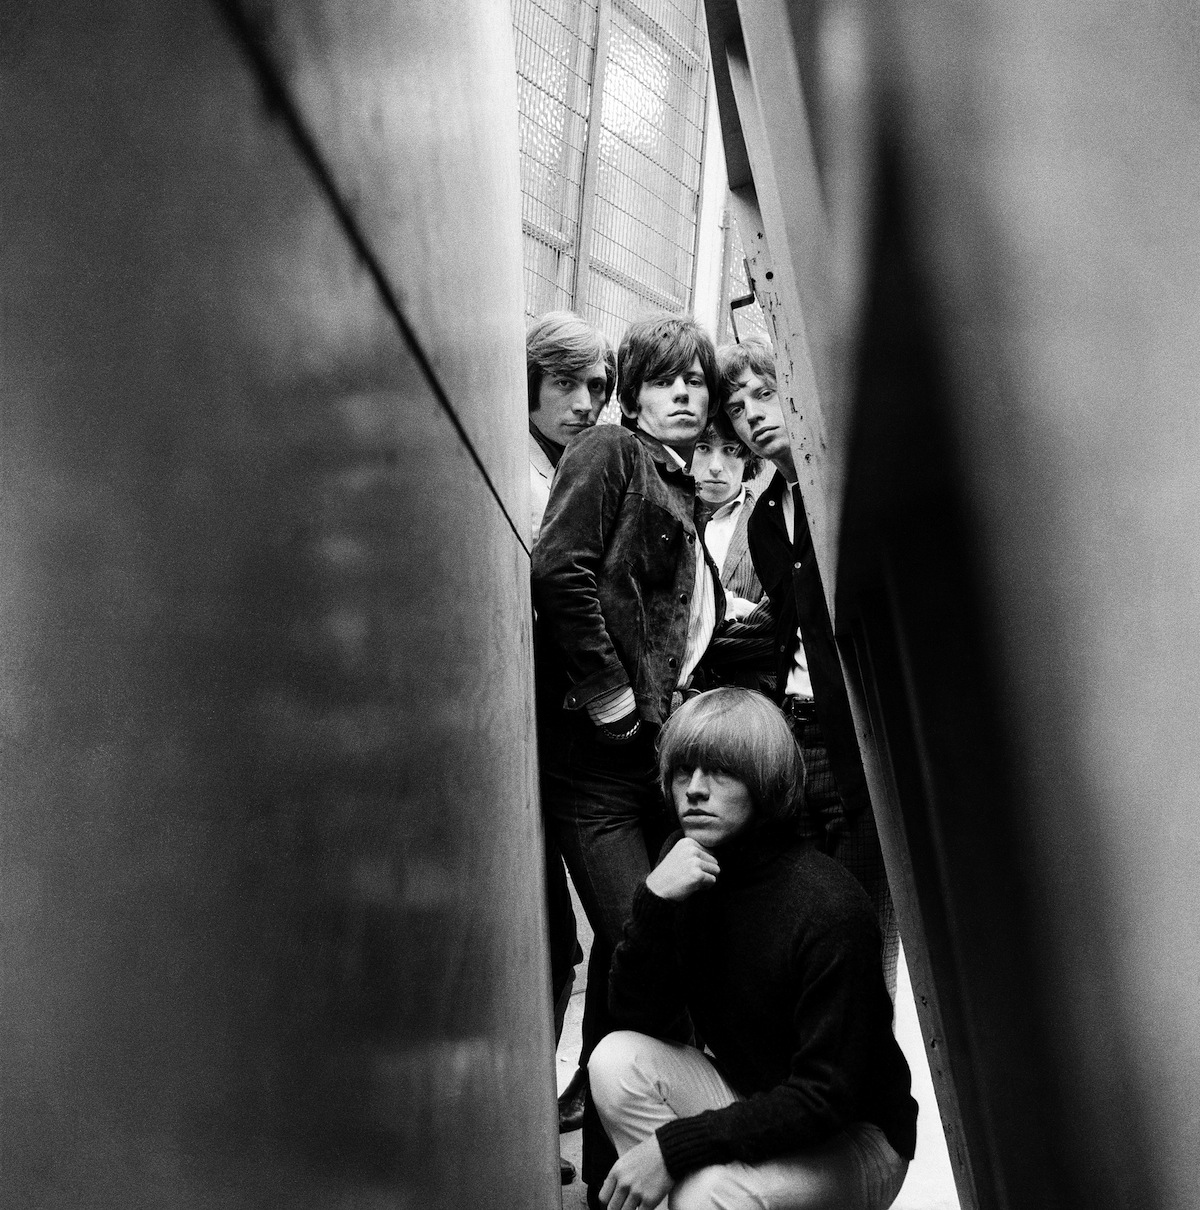 'Out Of Our Heads' shot (Credit: Gered Mankowitz)